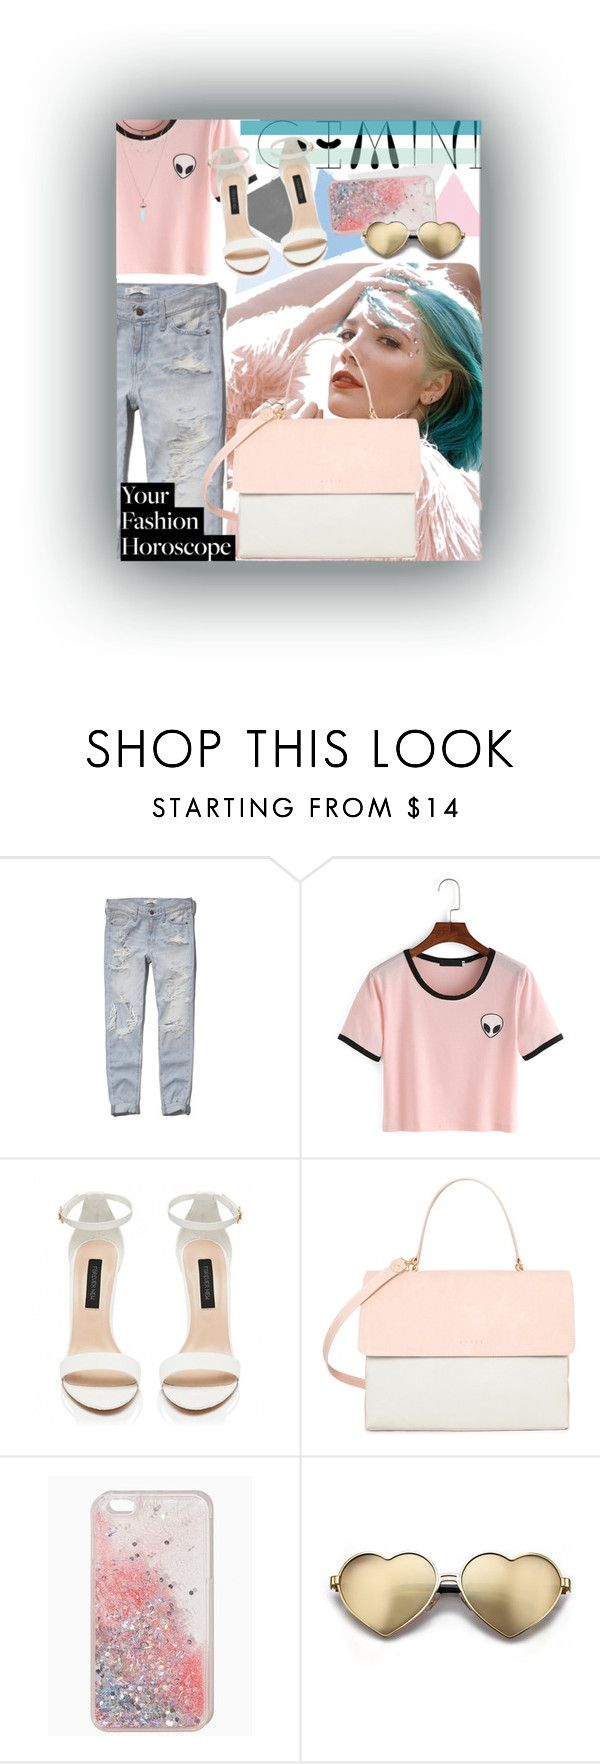 """Gemini"" by karimaputri on Polyvore featuring Abercrombie & Fitch, Eddie, Wildfox, fashionhoroscope and stylehoroscope"